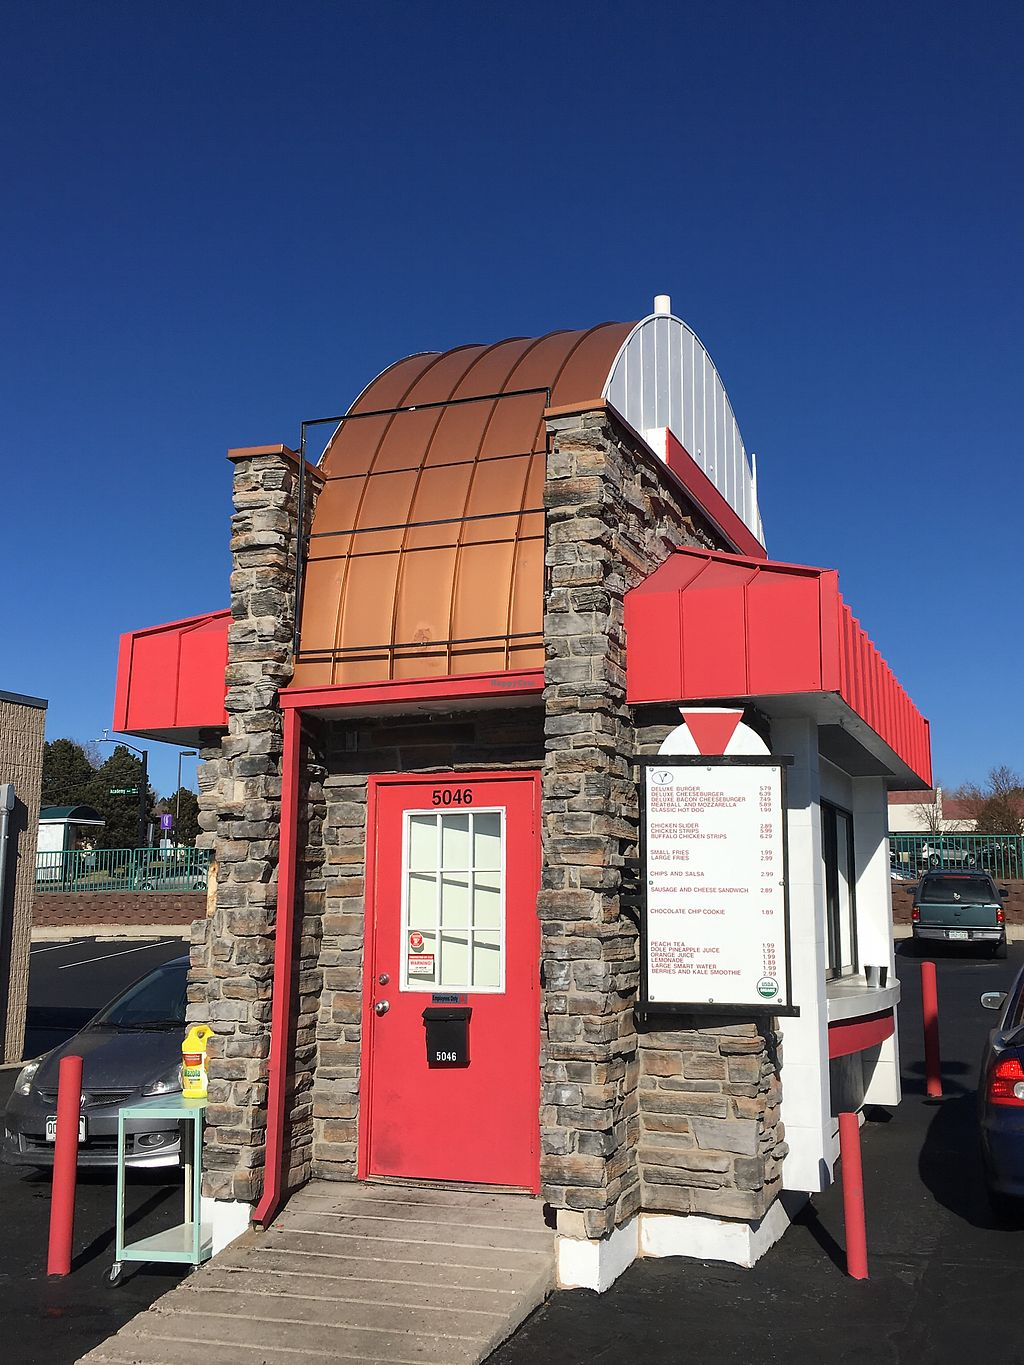 """Photo of Santana's Vegan Grill  by <a href=""""/members/profile/xavierfretard"""">xavierfretard</a> <br/>Drive through <br/> January 8, 2018  - <a href='/contact/abuse/image/108216/344525'>Report</a>"""